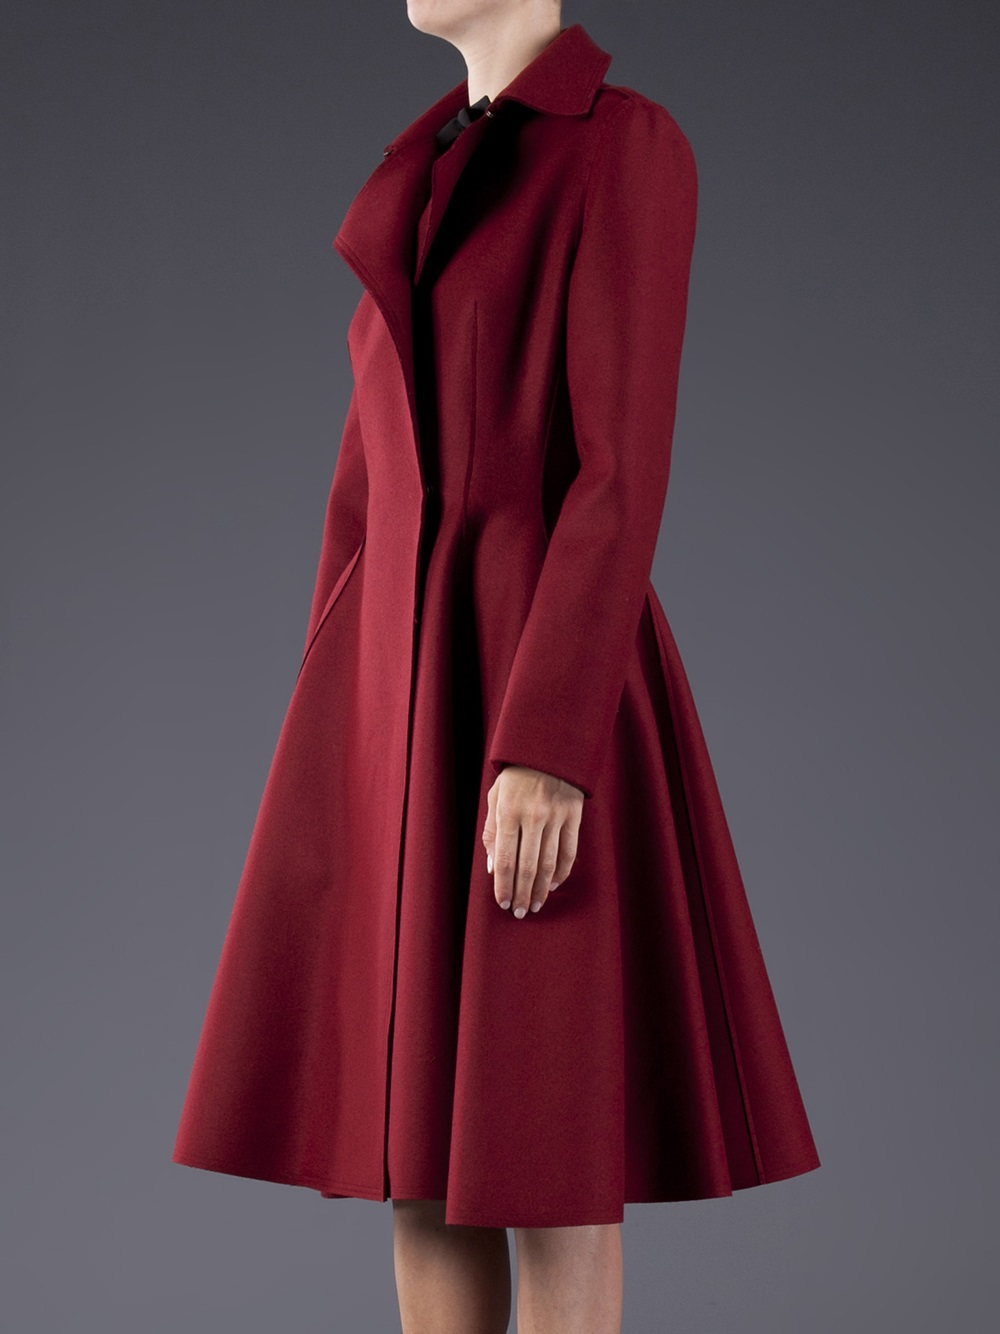 Lyst Lanvin Flare Skirt Coat In Red